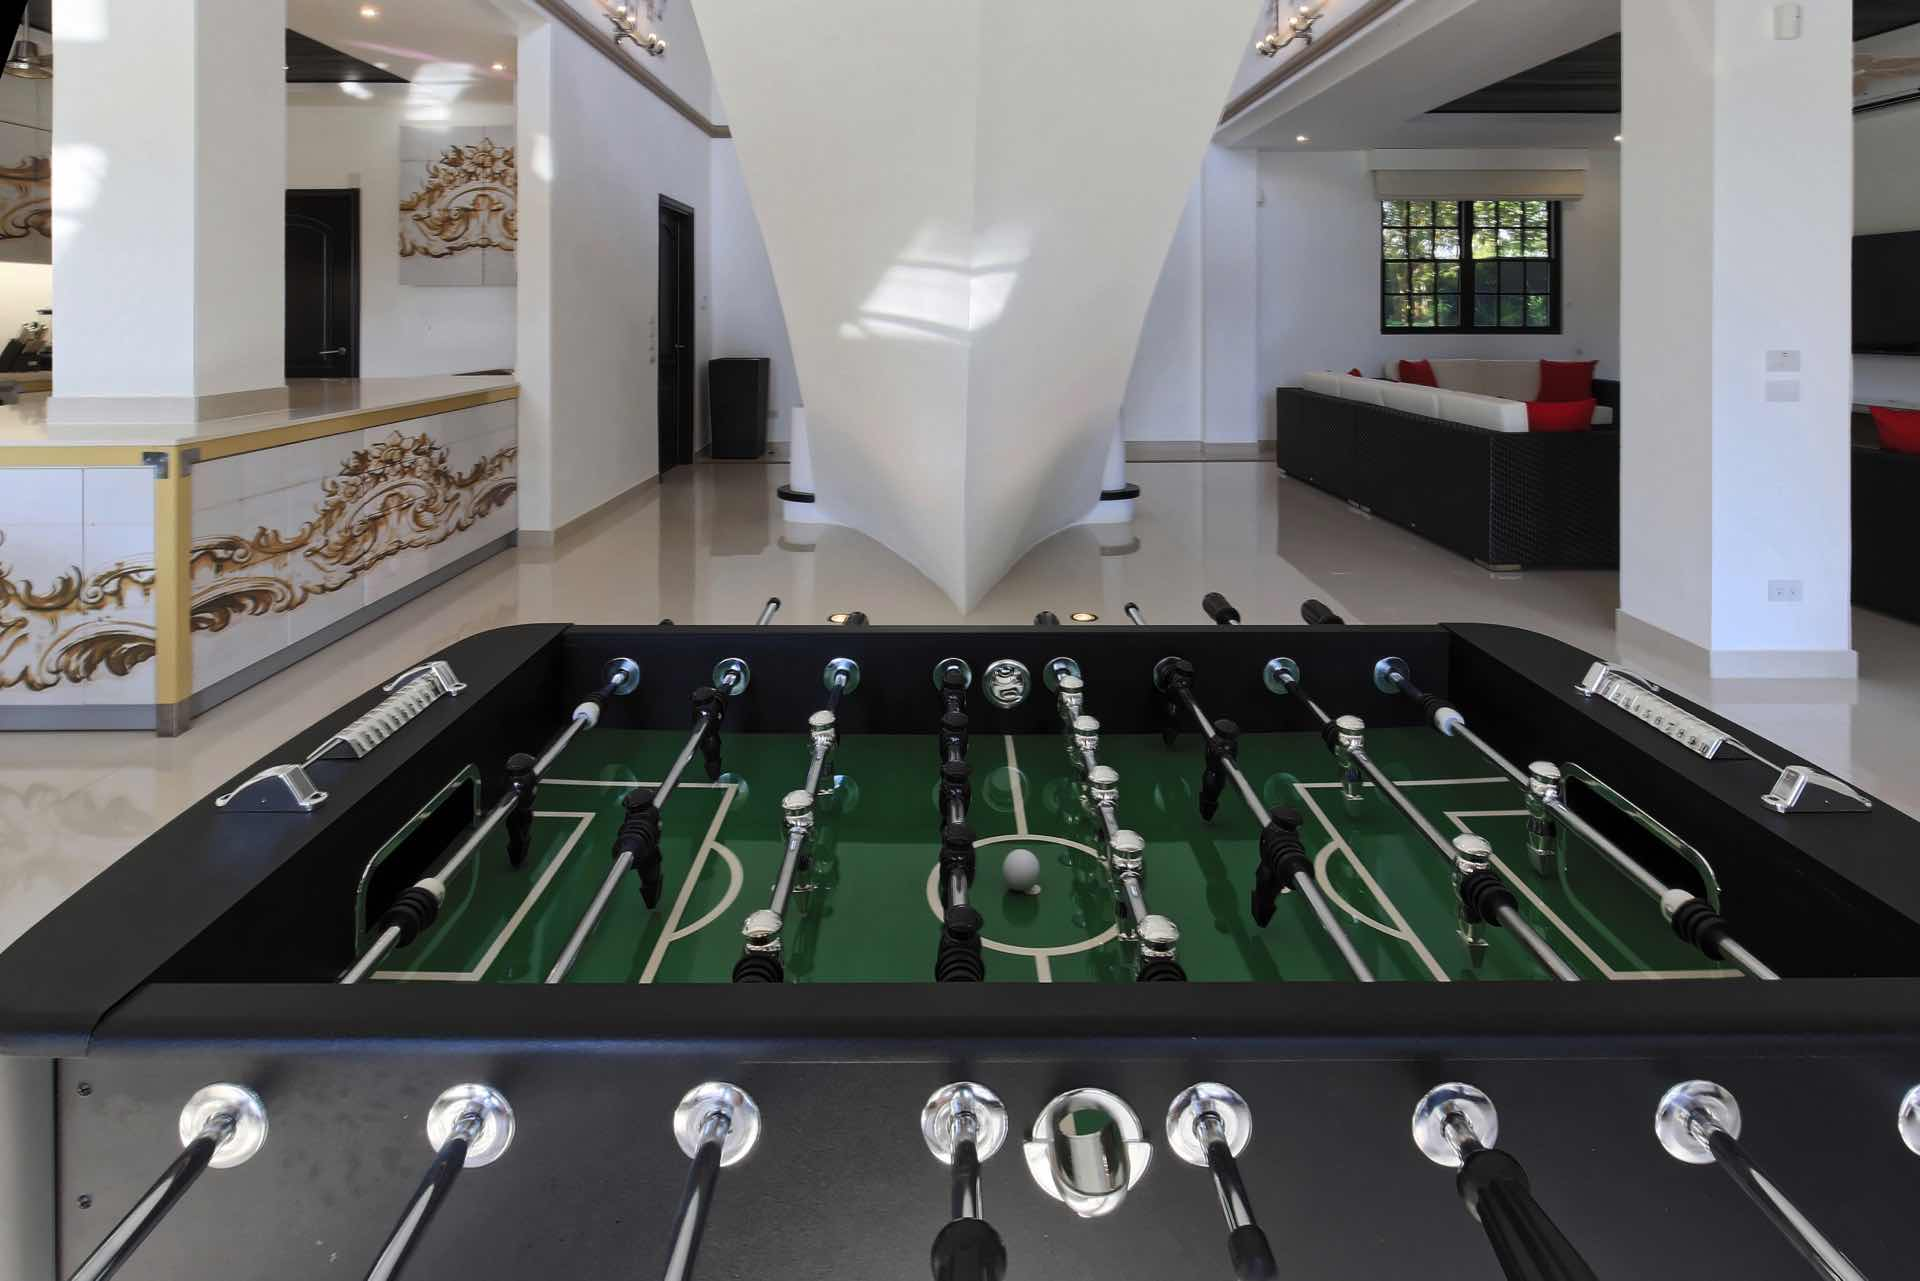 Enjoy some time off with the good old foosball